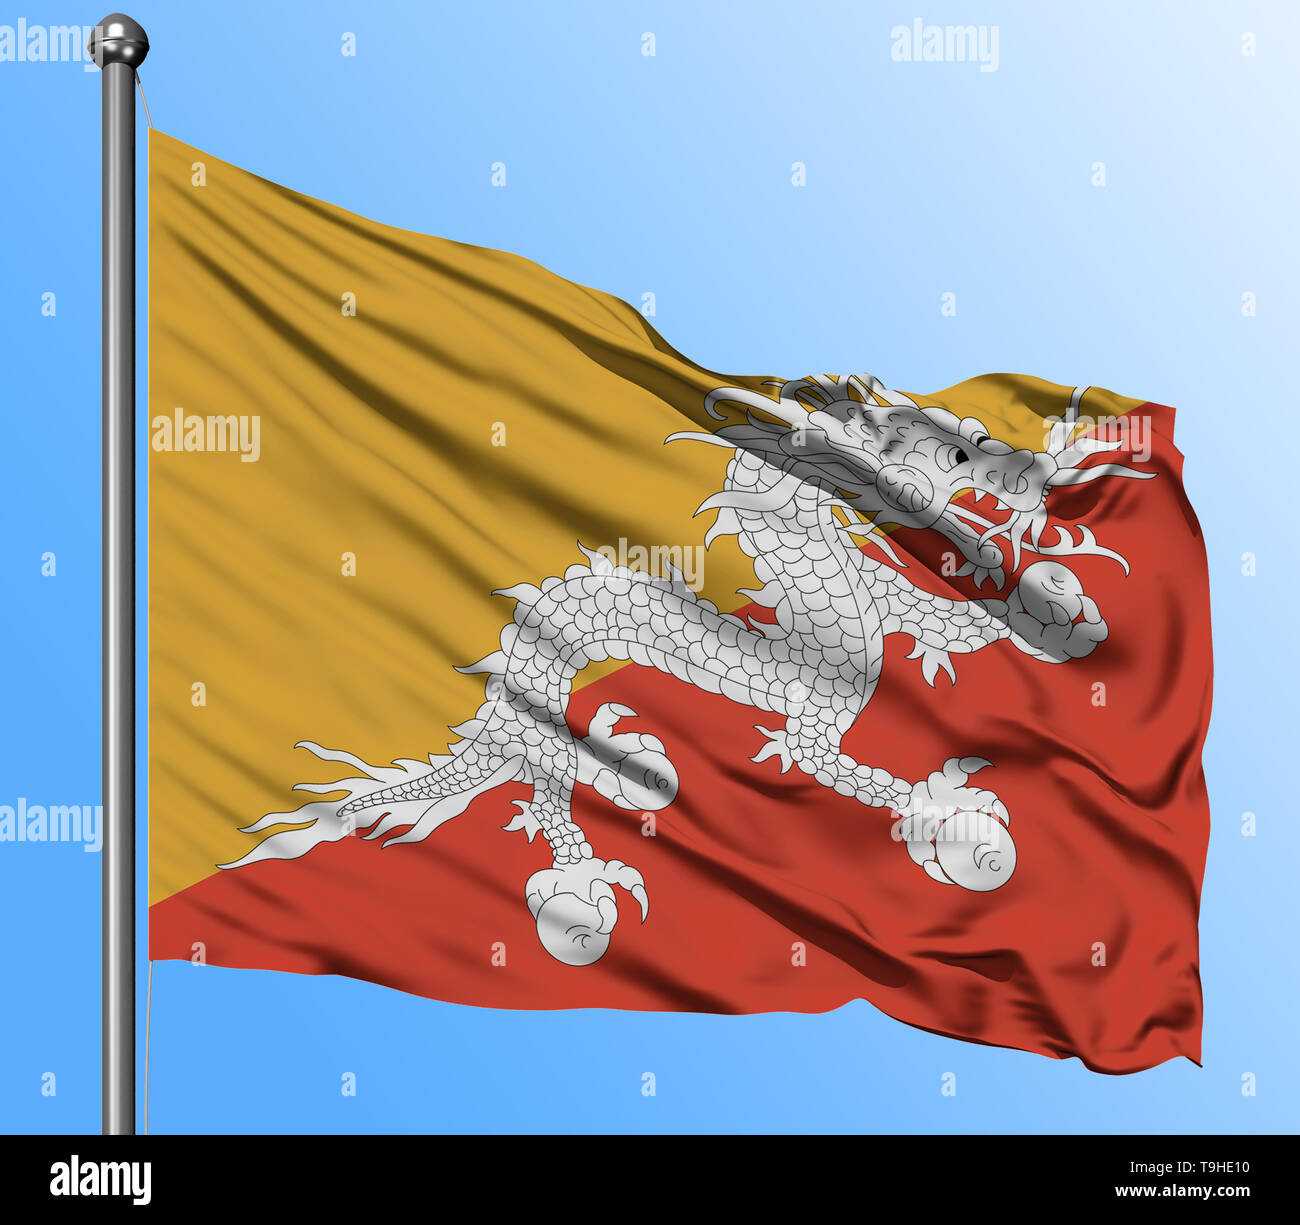 Bhutan flag waving in the deep blue sky background. Isolated national flag. Macro view shot. - Stock Image